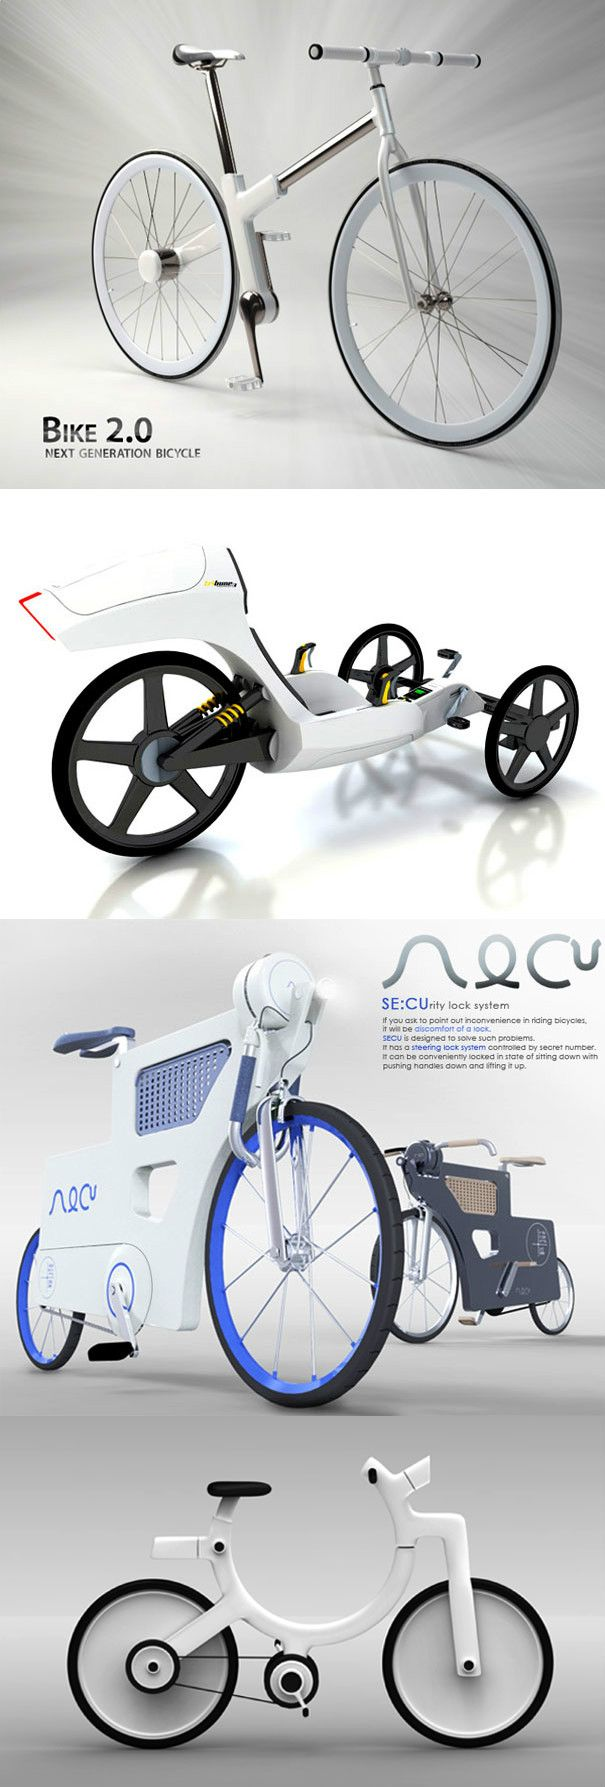 15 AMAZING BICYCLES FOR THE FUTURE OF SEOUL | READ FULL STORY AT YANKO DESIGN